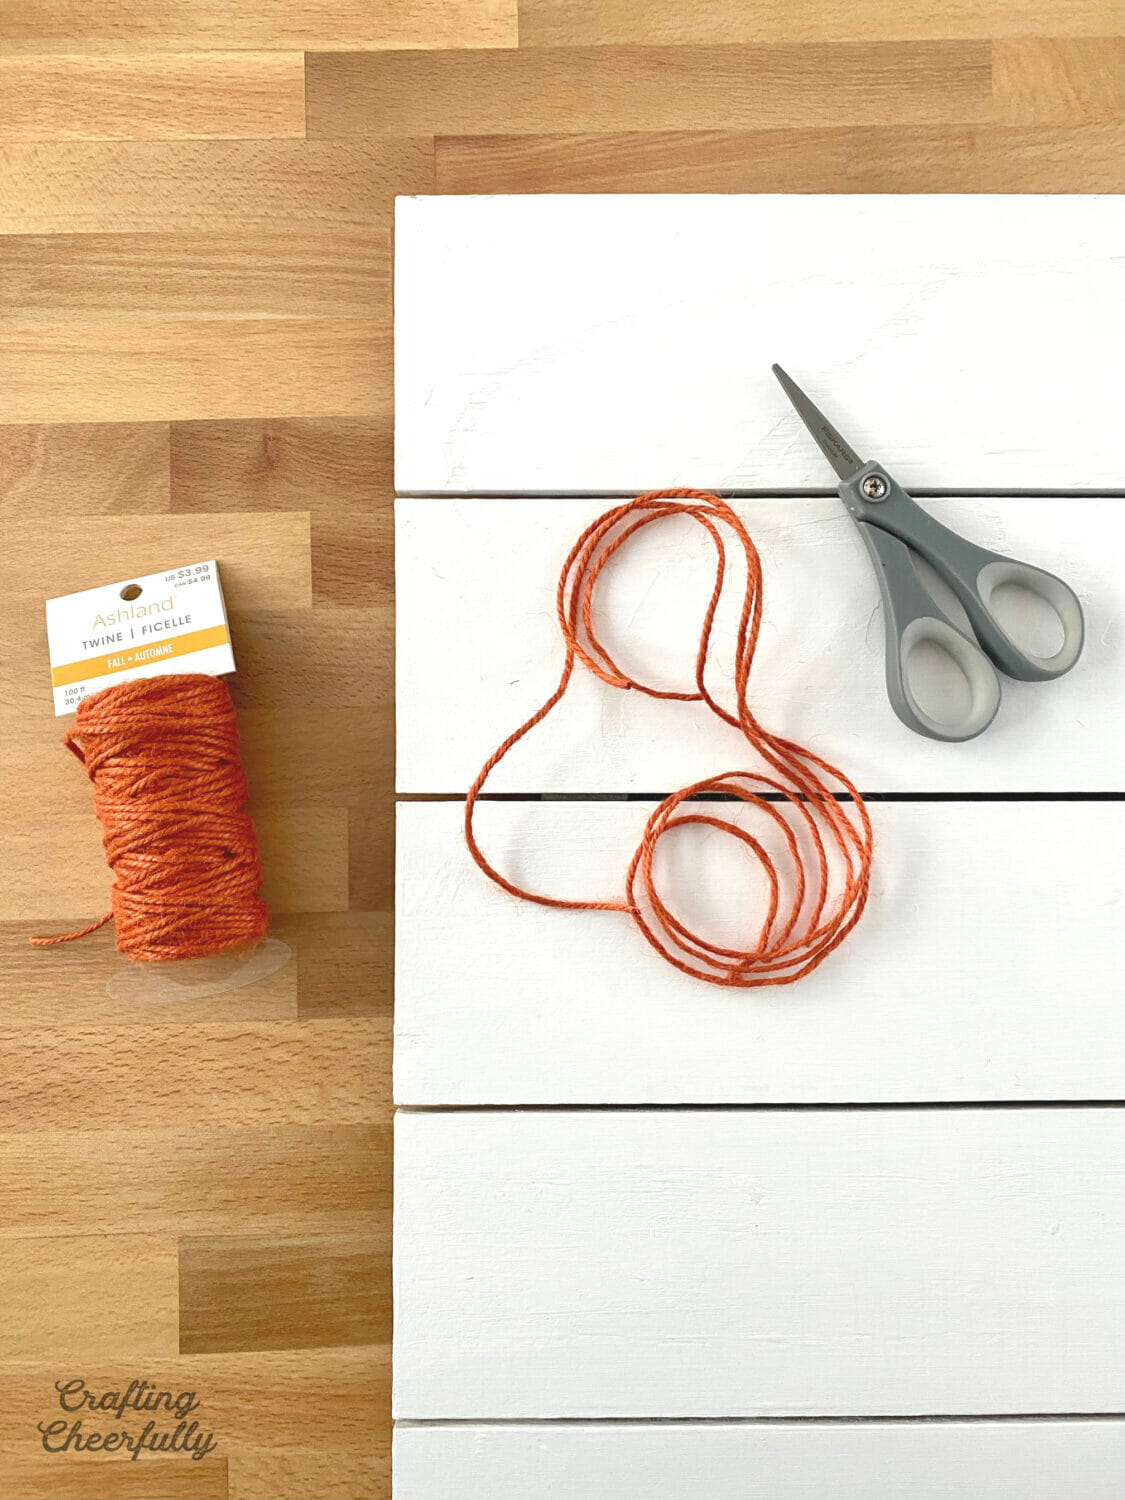 A white wooden board, a roll of orange twine and a scissors lays on a table.